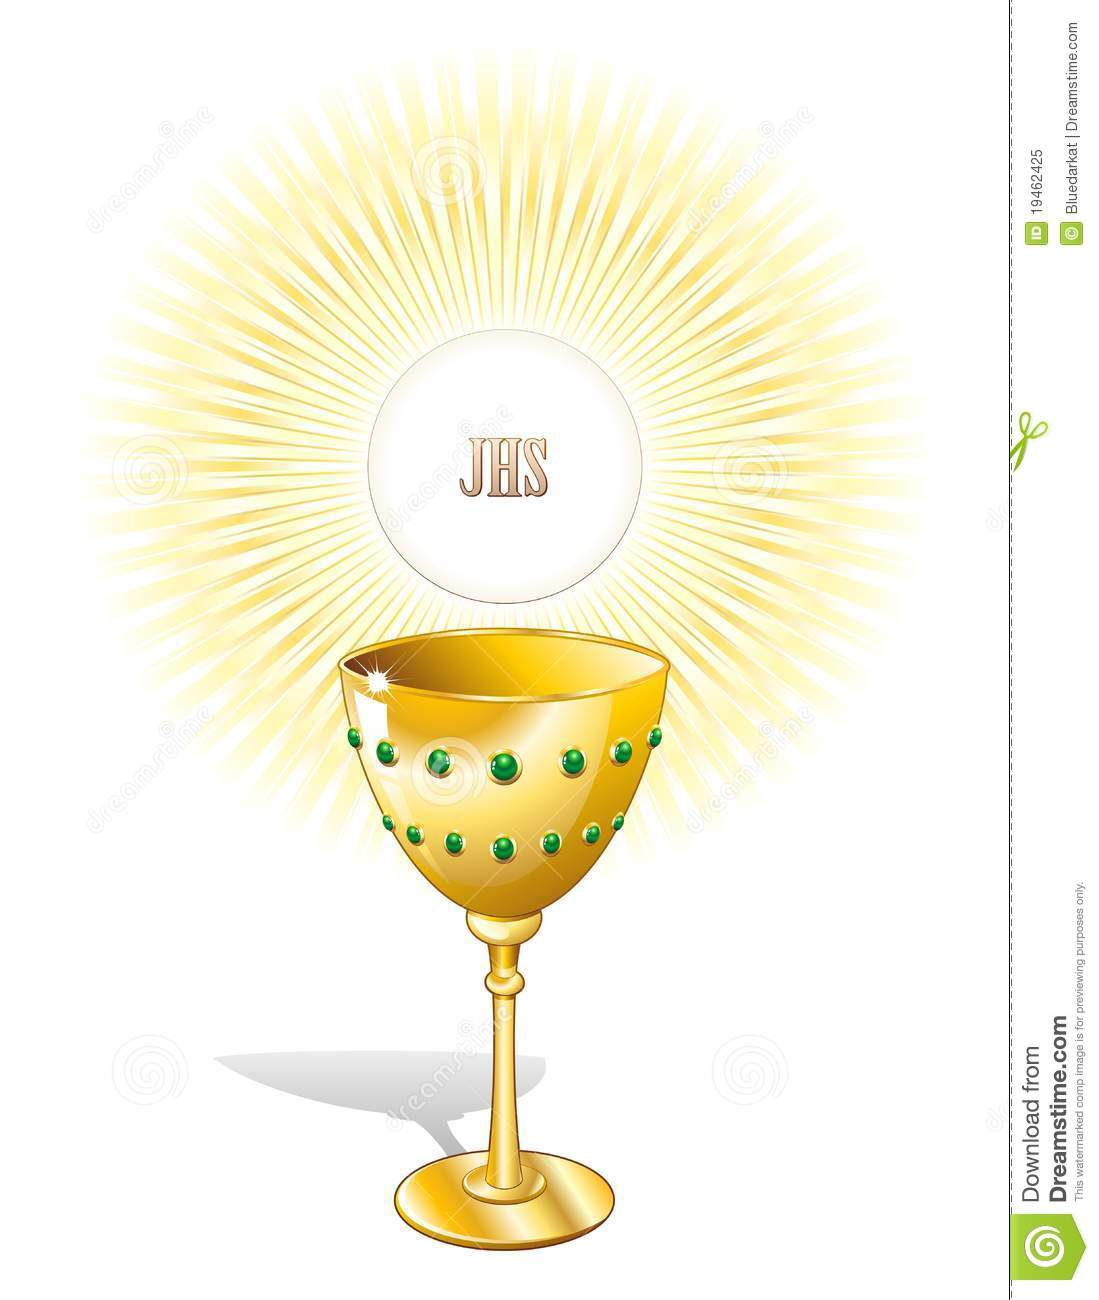 Religion Chalice Cup And Host Royalty Free Stock Photo - Image ...